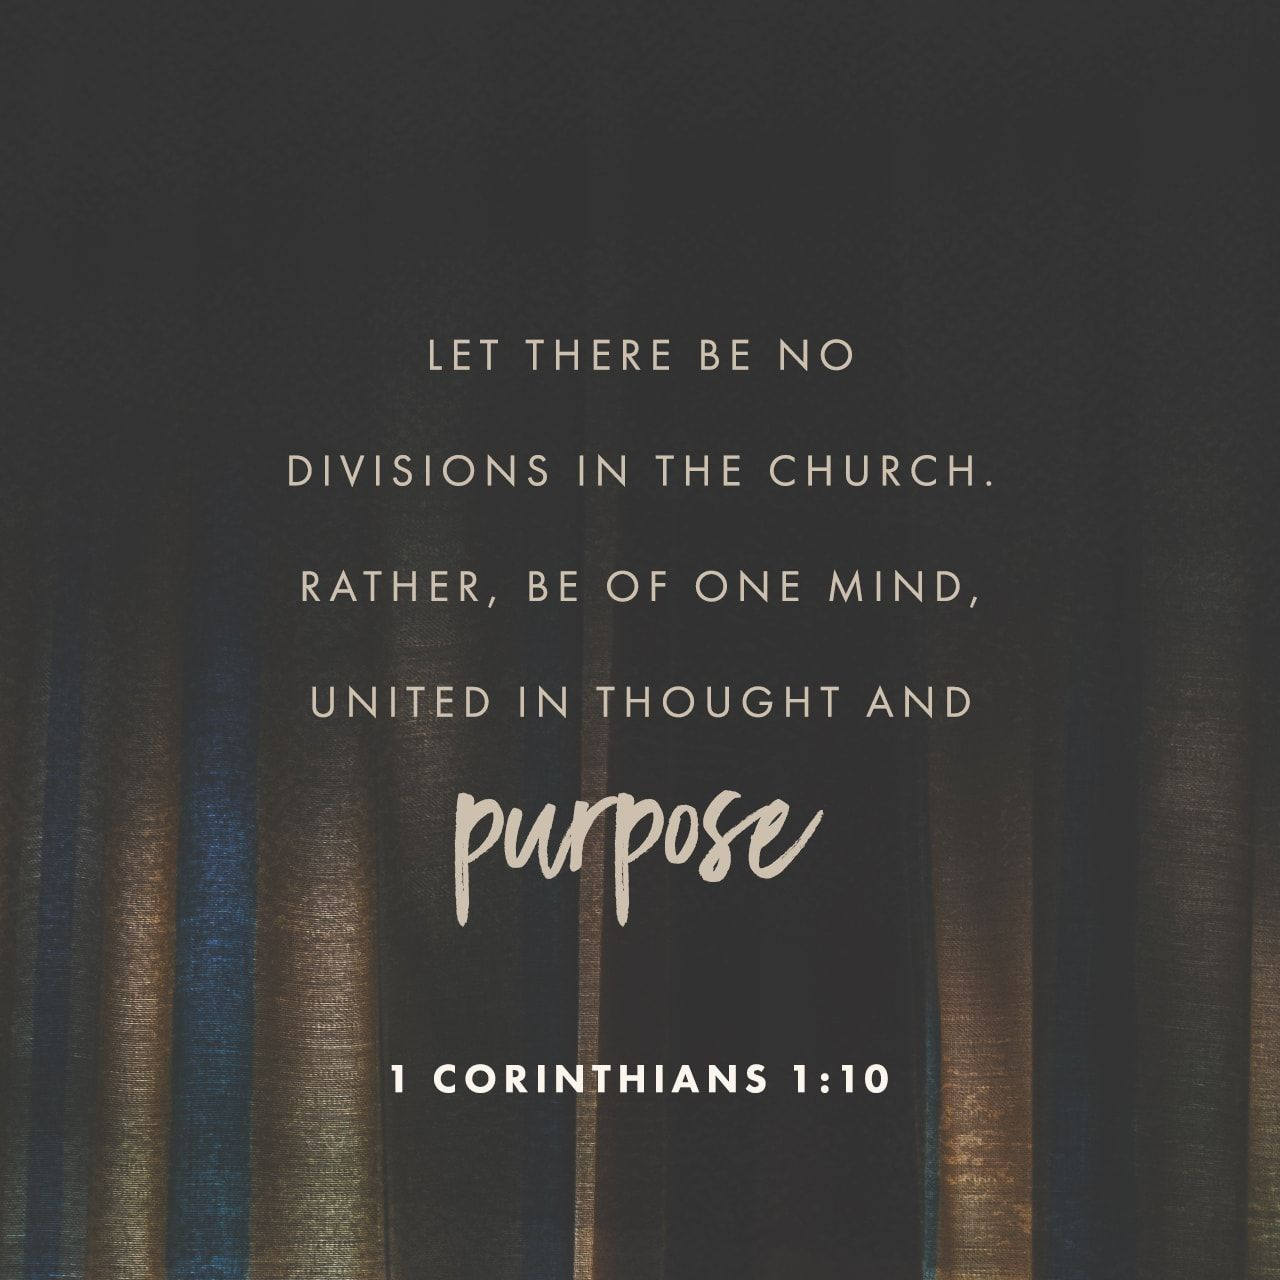 Pin on Daily Verse Inspiration